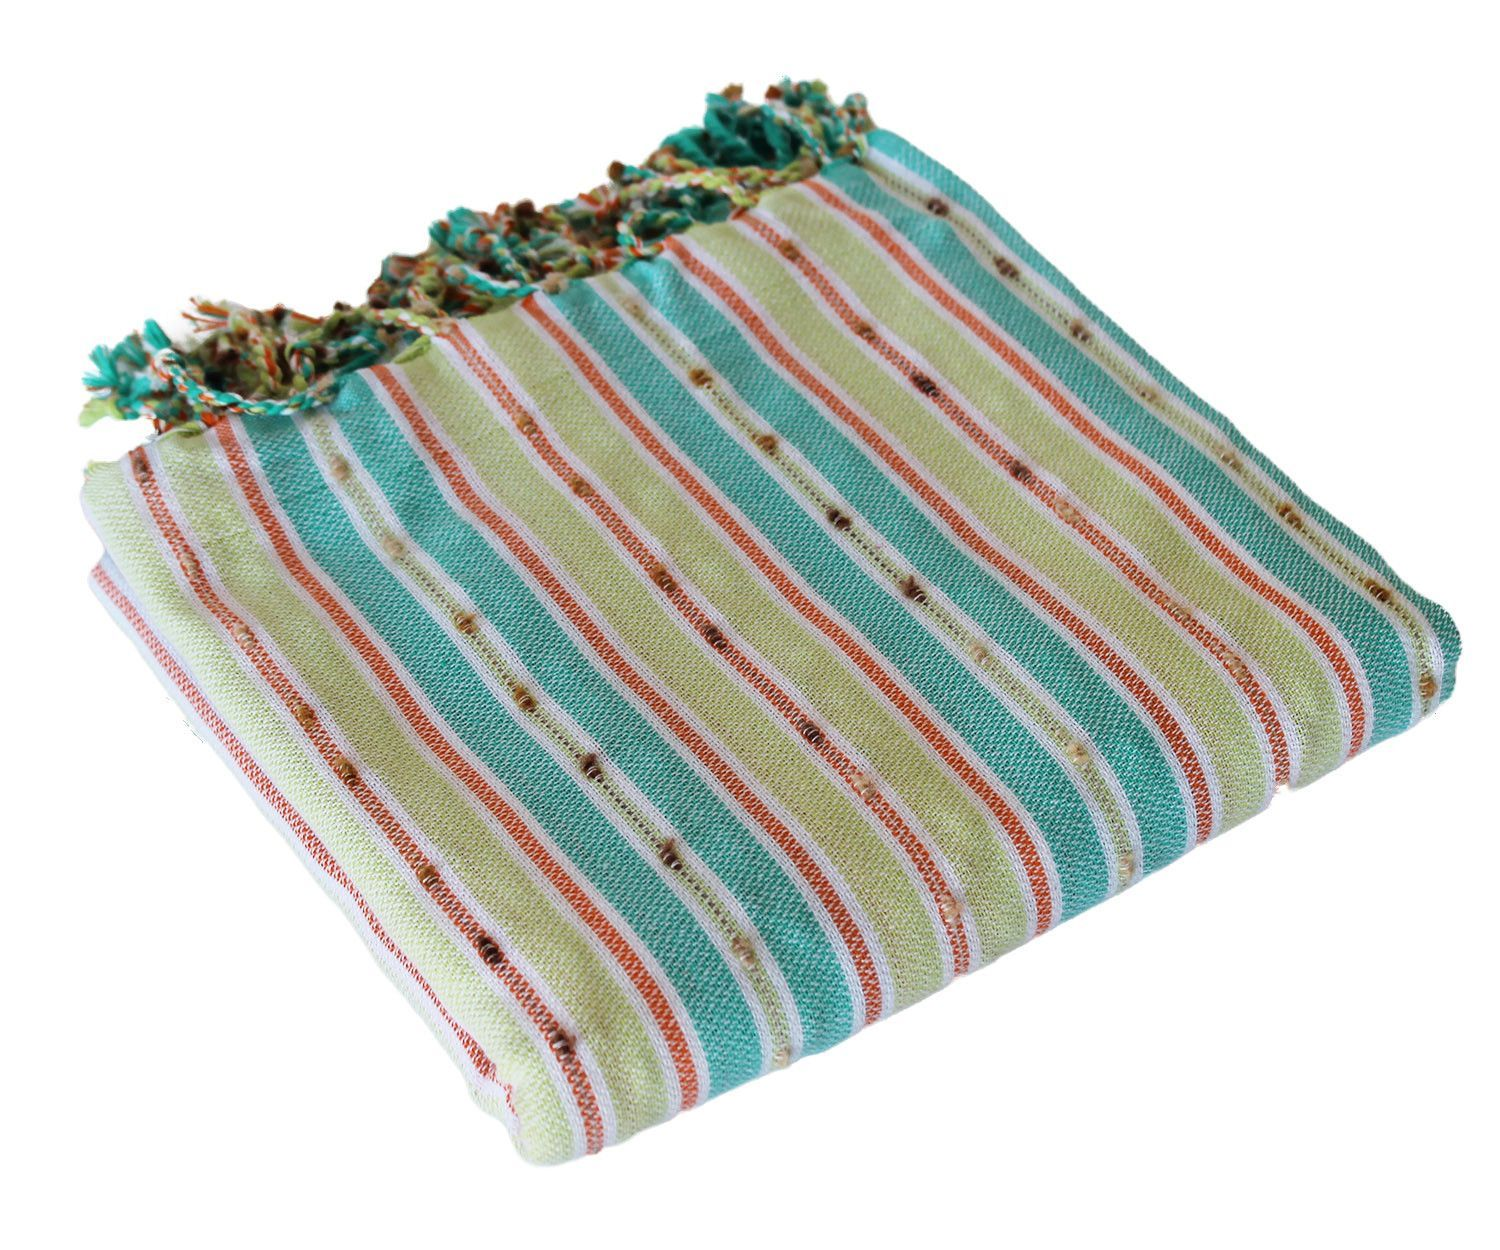 Mint Green Bath Towels Enchanting Mint Green Designer Peshtemal Turkish Towel  Mint Green Towels And Decorating Design